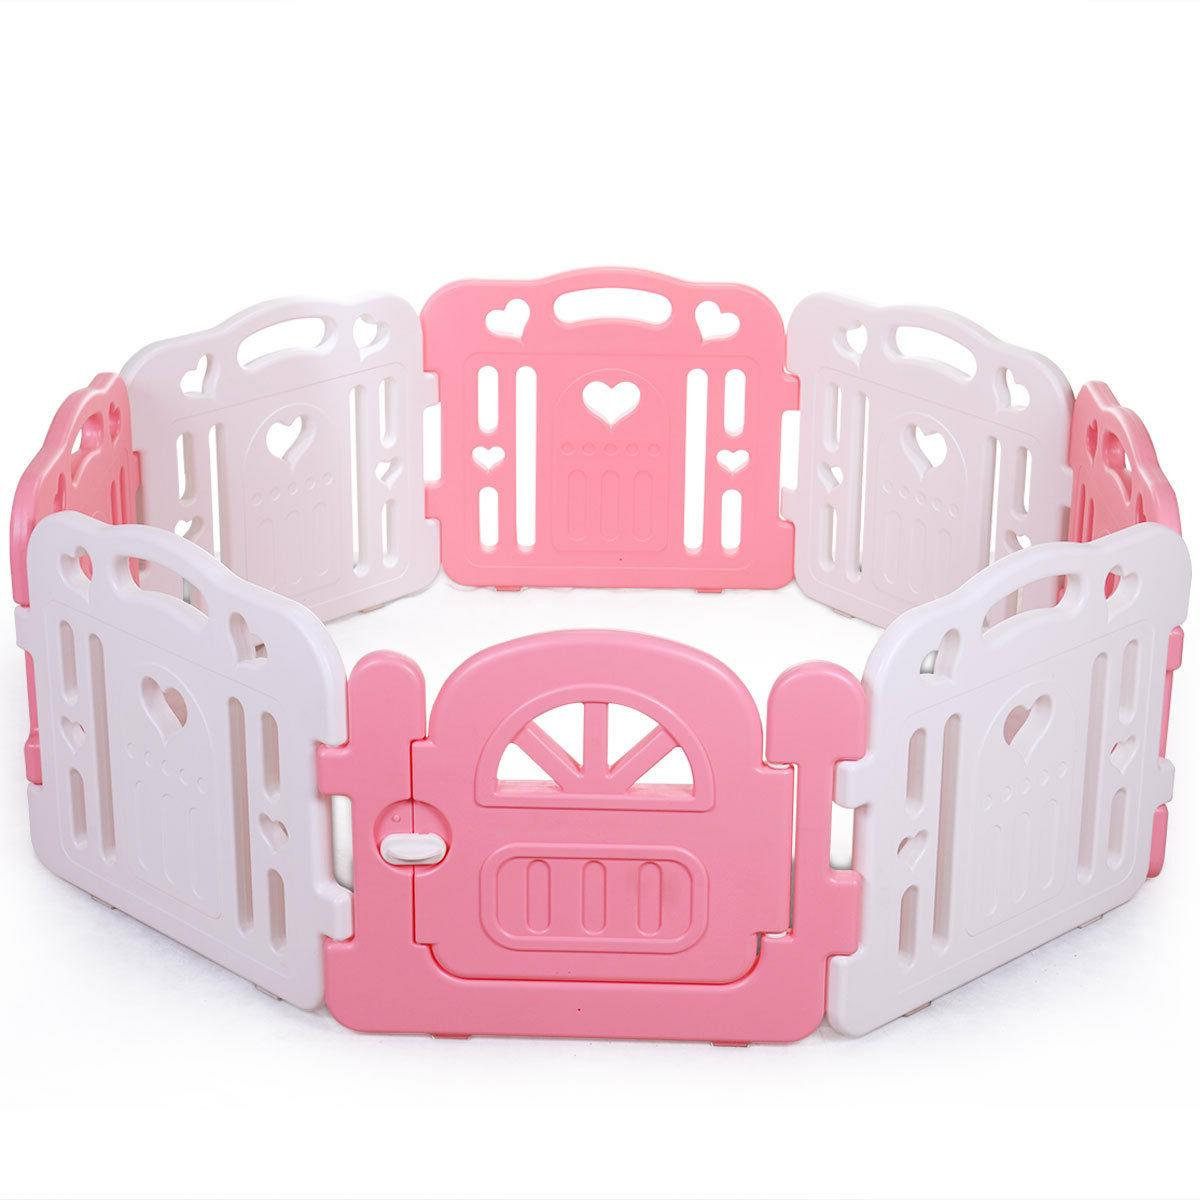 Baby Yards Fence 8 Activity Center Play Yard Pink